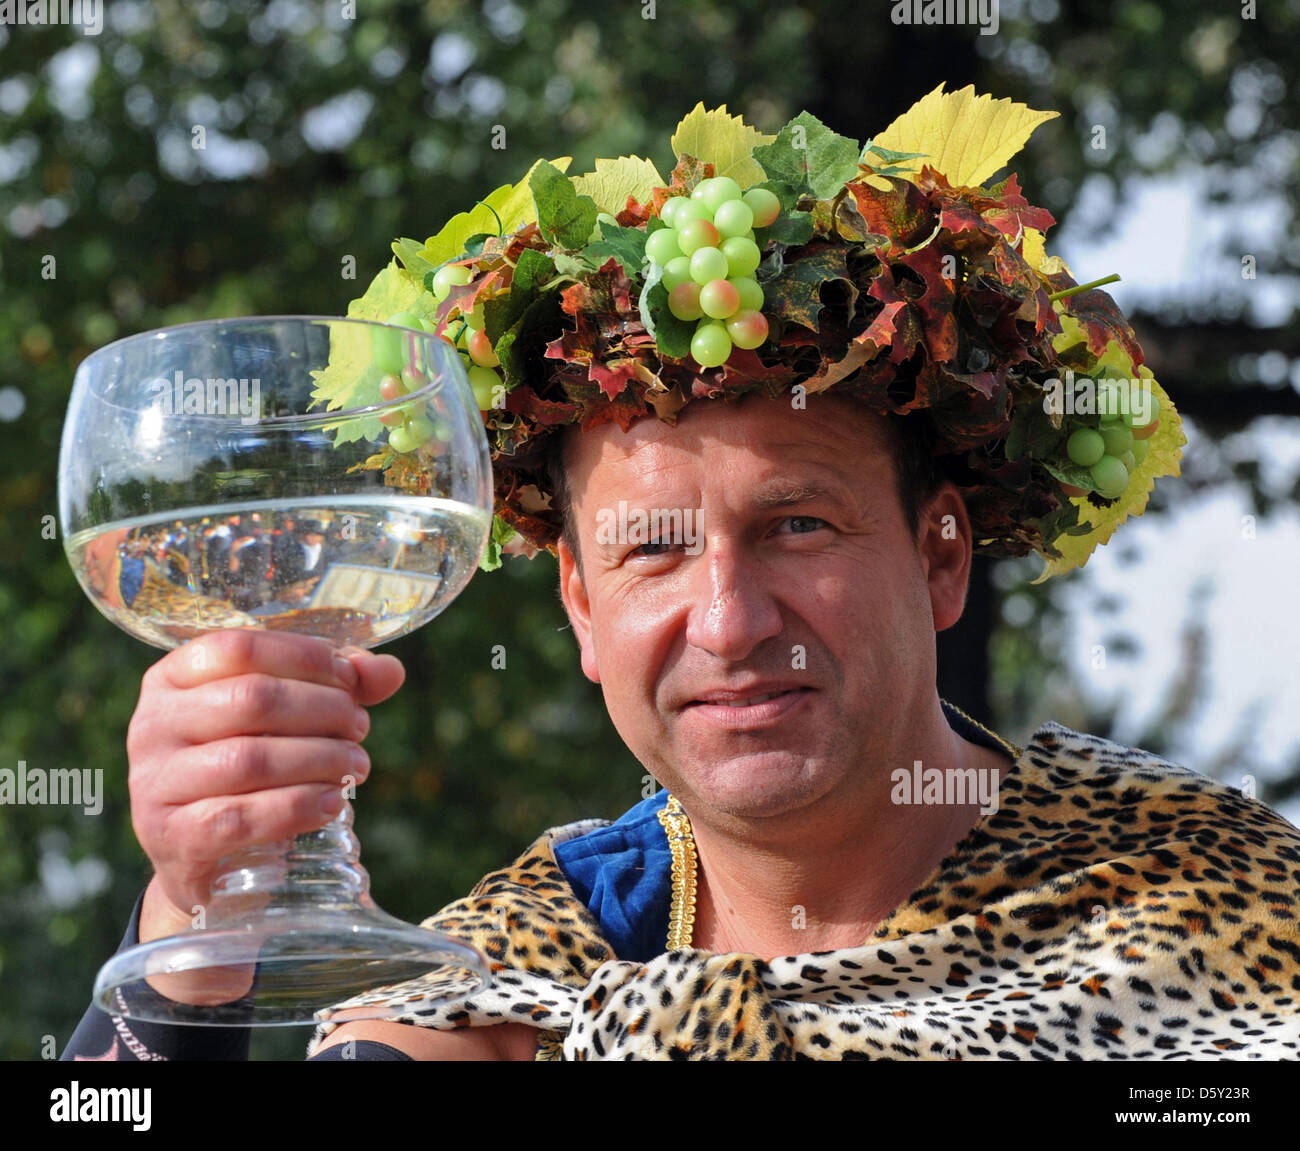 Joerg Riedrich as bacchus leads the 2nd parade of Saxon Winemakers in Radebeul, Germany, 07 October 2012. 400 people Stock Photo